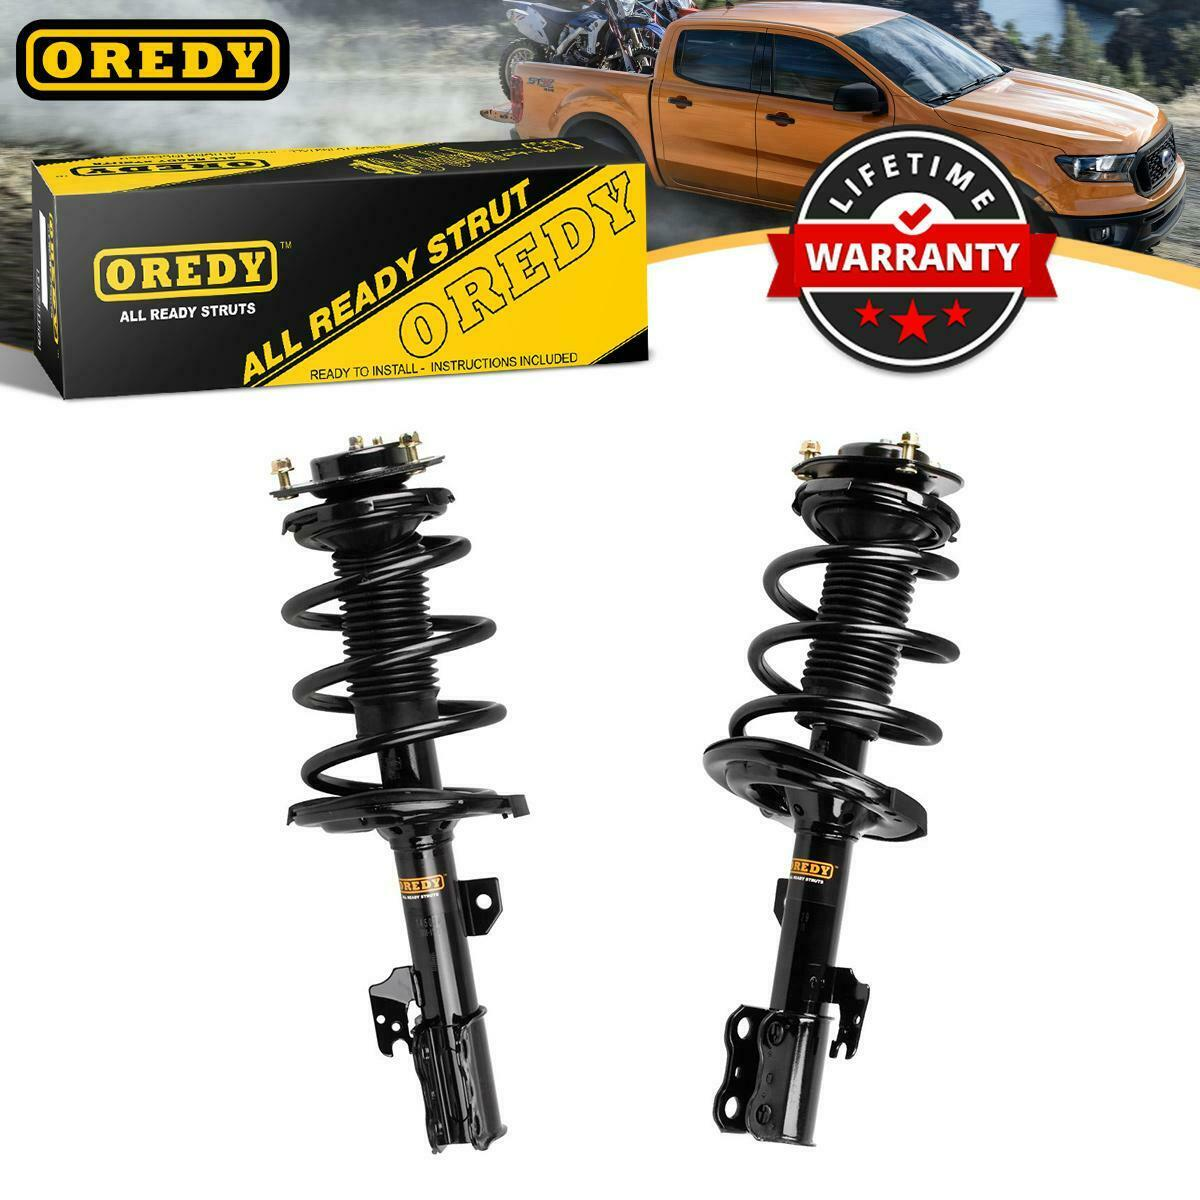 Complete Struts,ECCPP Front Pair Complete Strut Assembly Shock Absorber for 2007-2011 Chevrolet Silverado 1500,2007-2011 GMC Sierra 1500 Set of 2